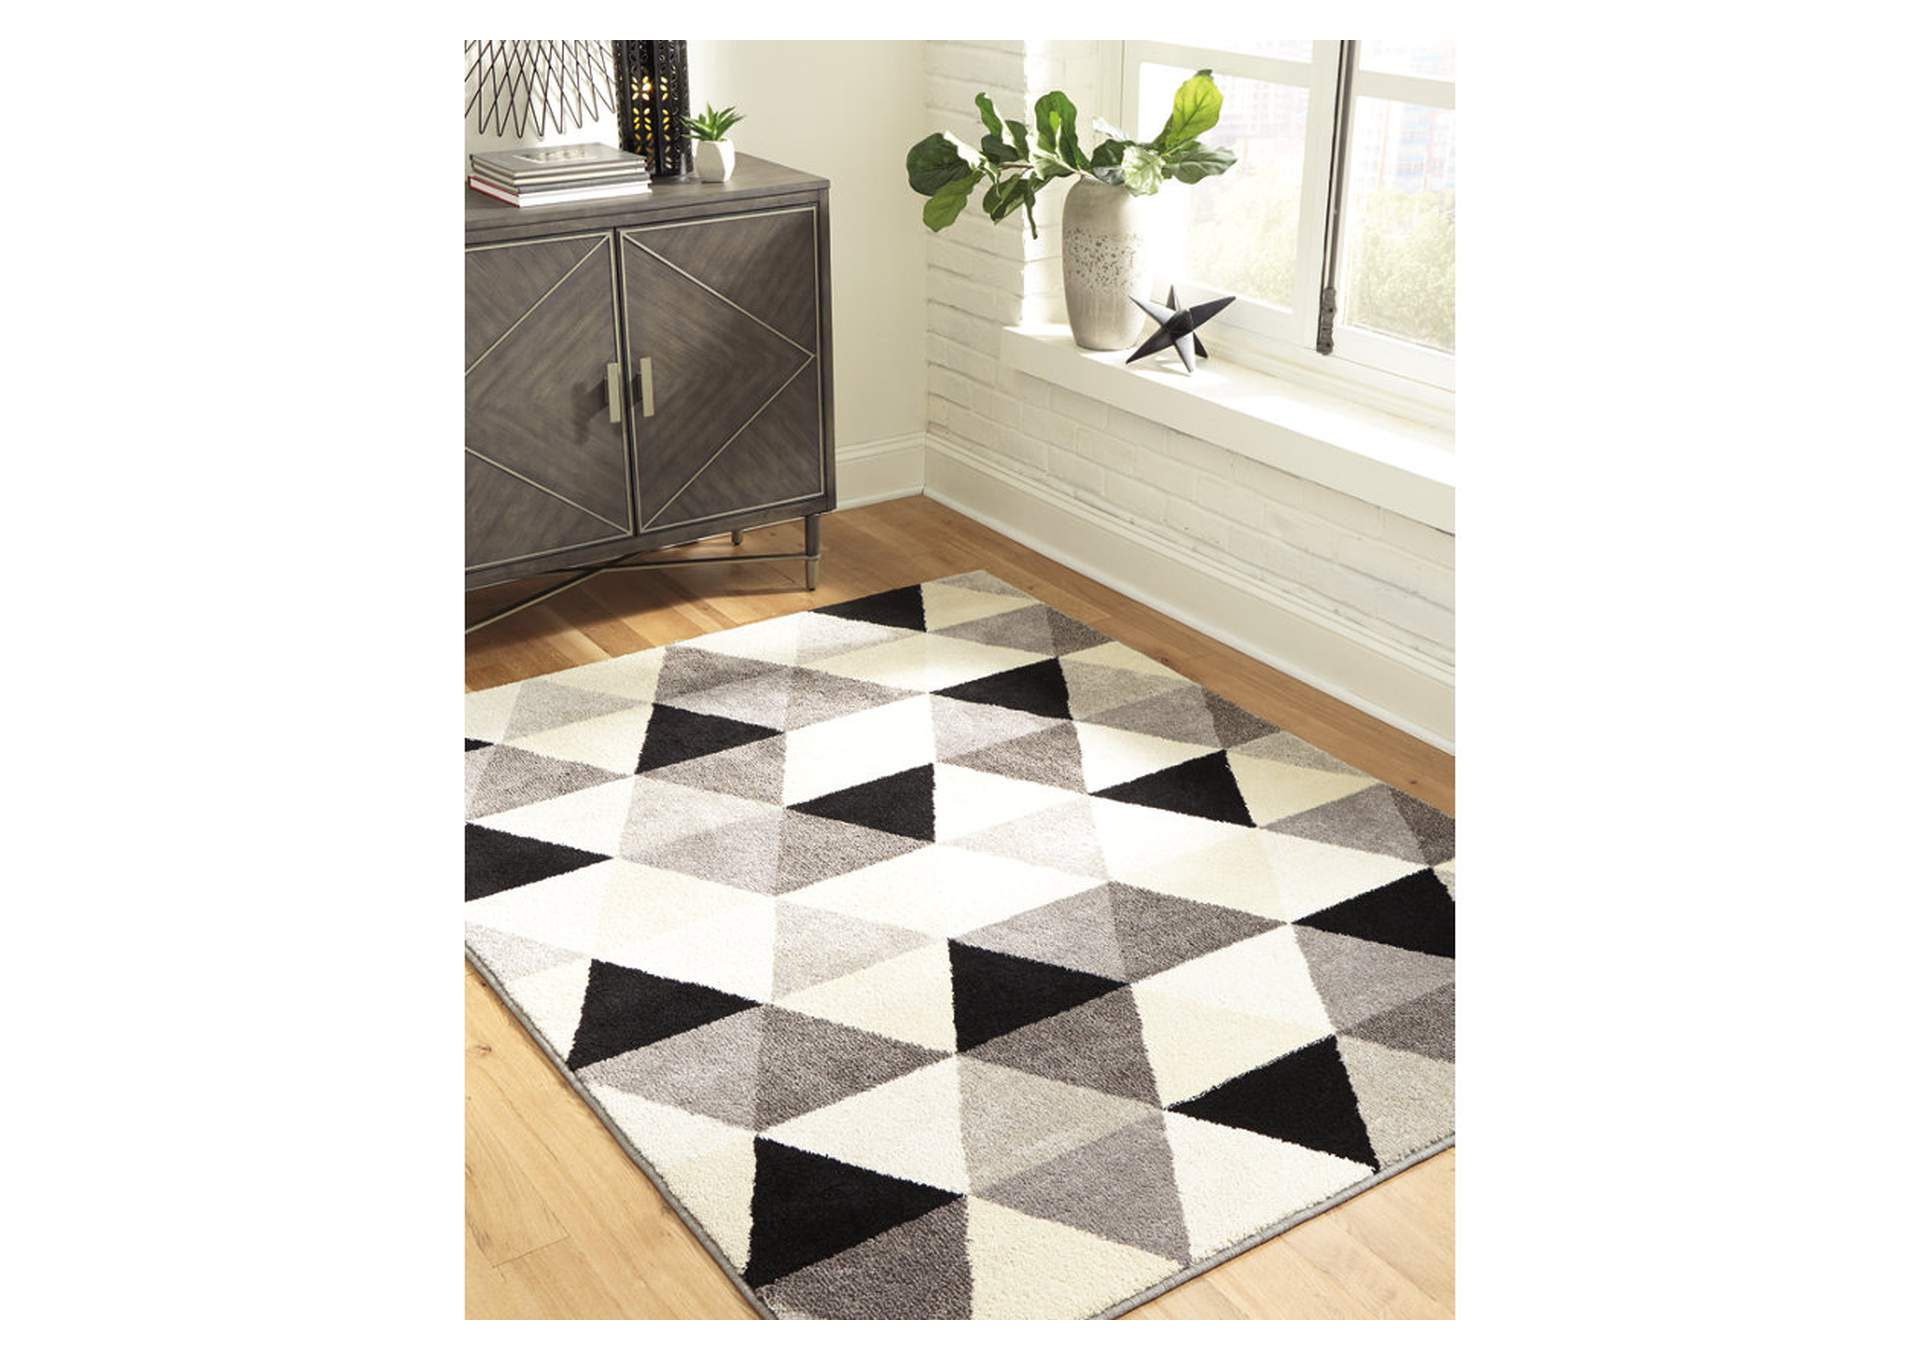 Jamaun Black/Cream Medium Rug,Signature Design By Ashley